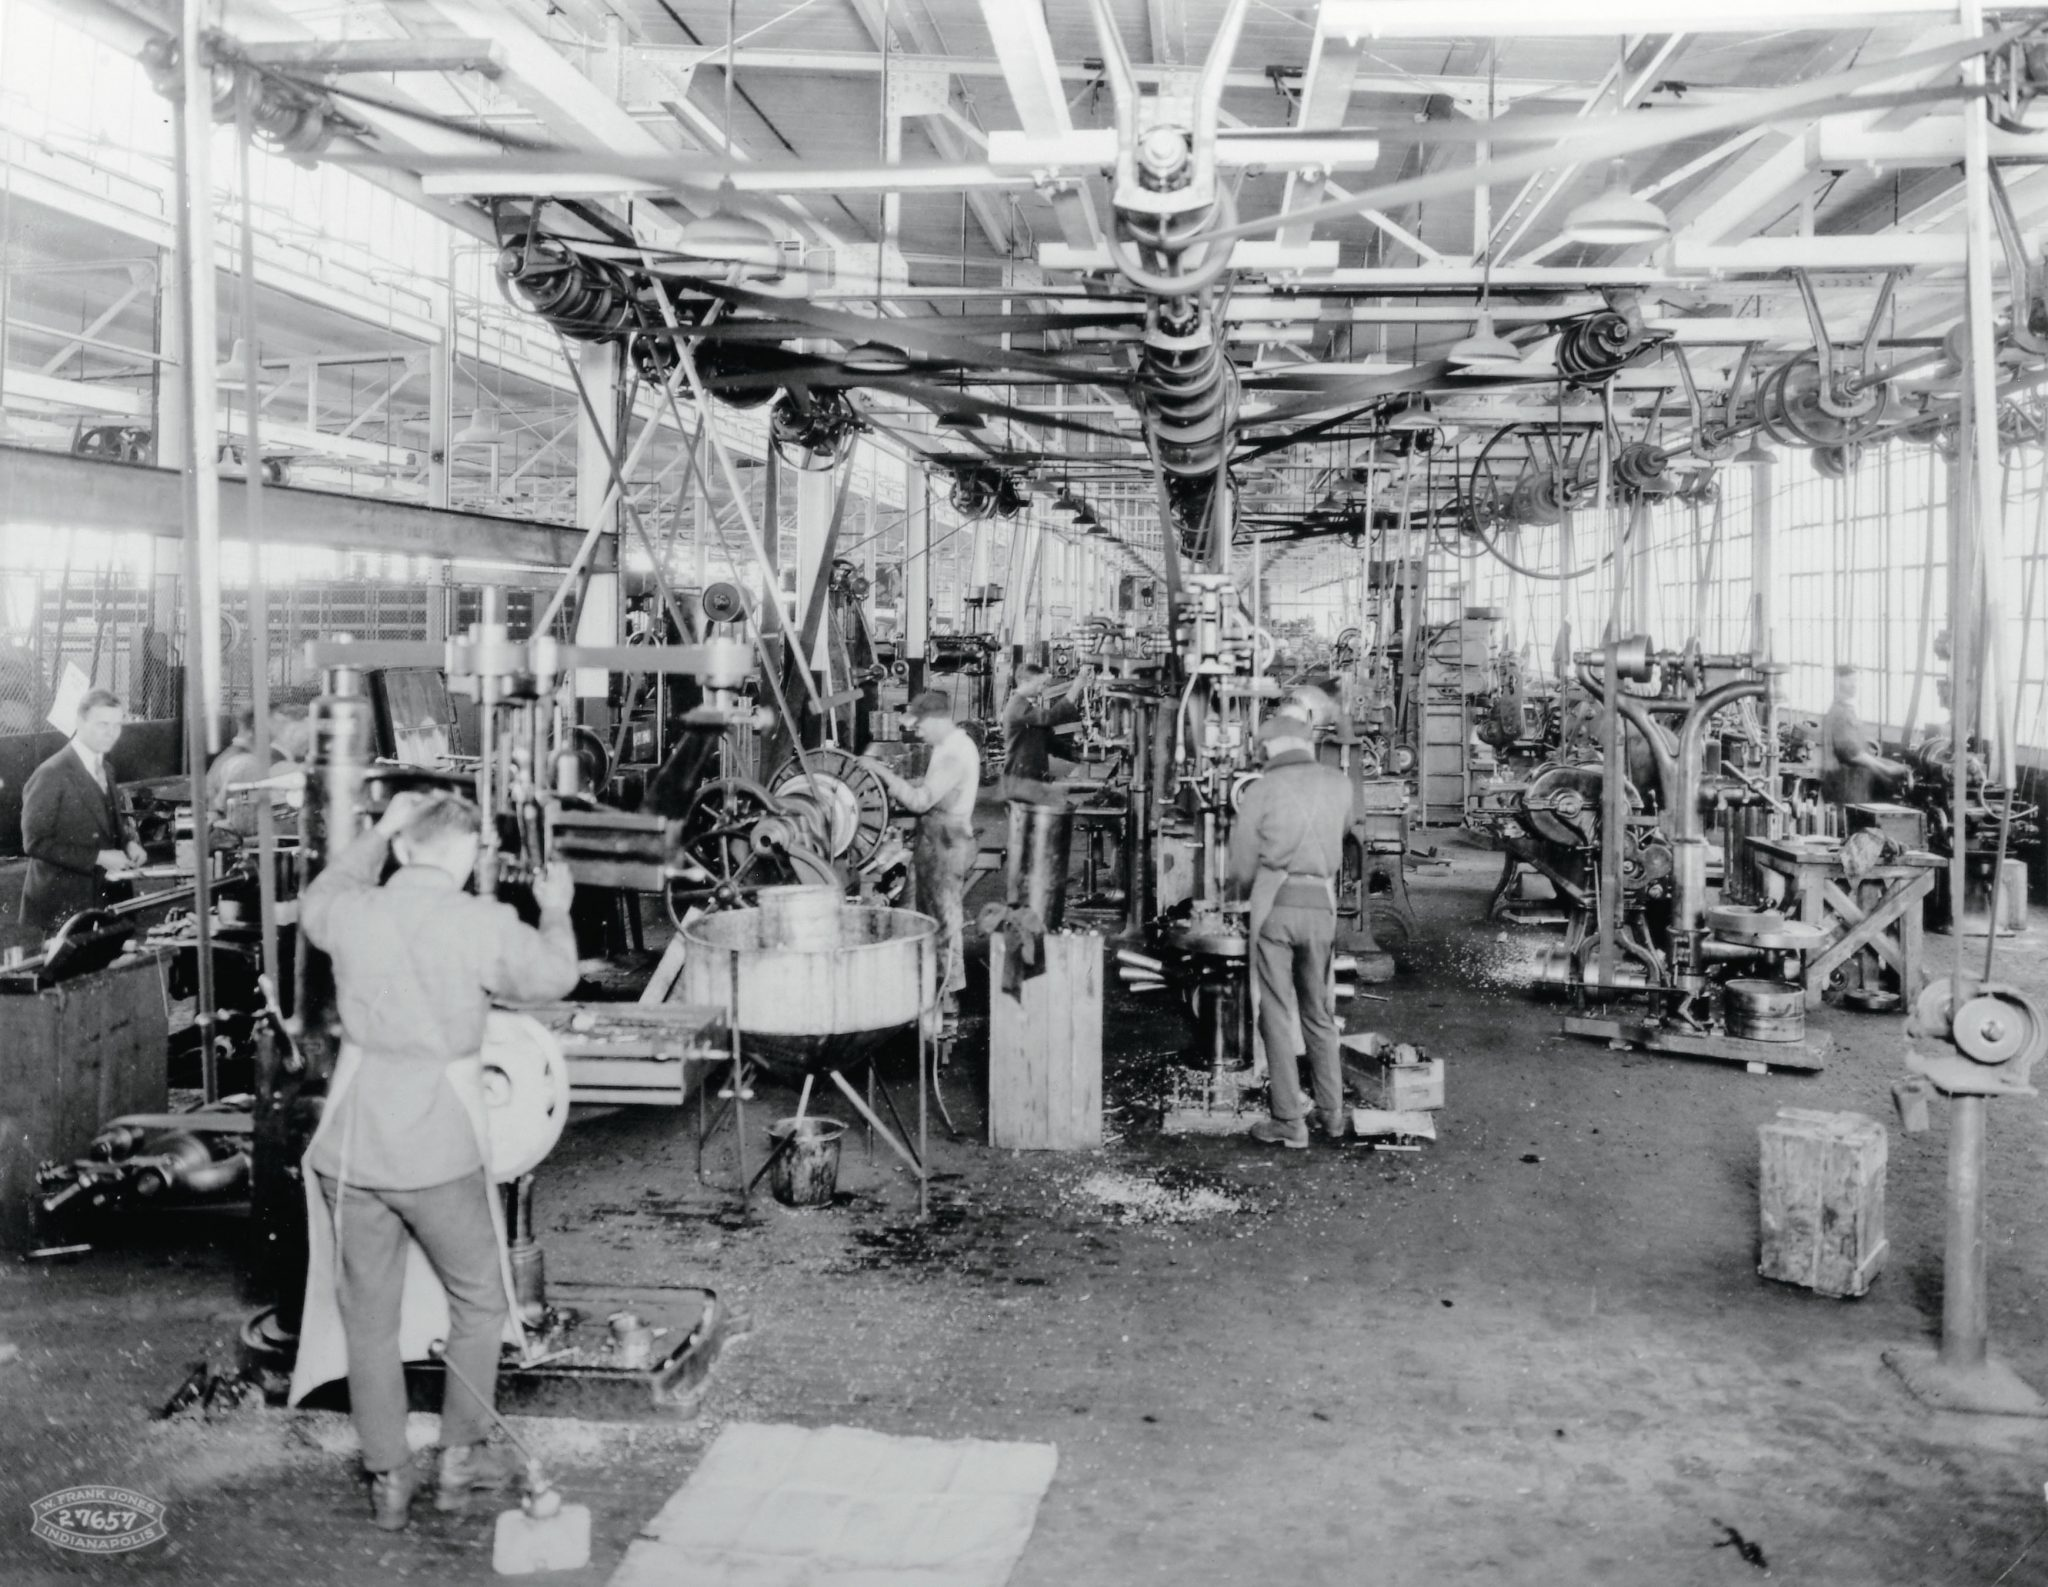 The new Duesenberg assembly plant in Indianapolis utilized the latest machinery available in 1921. This is the machine shop at Washington and Harding Streets. Note the complex overhead pulley system used to power all of the machines in the shop.